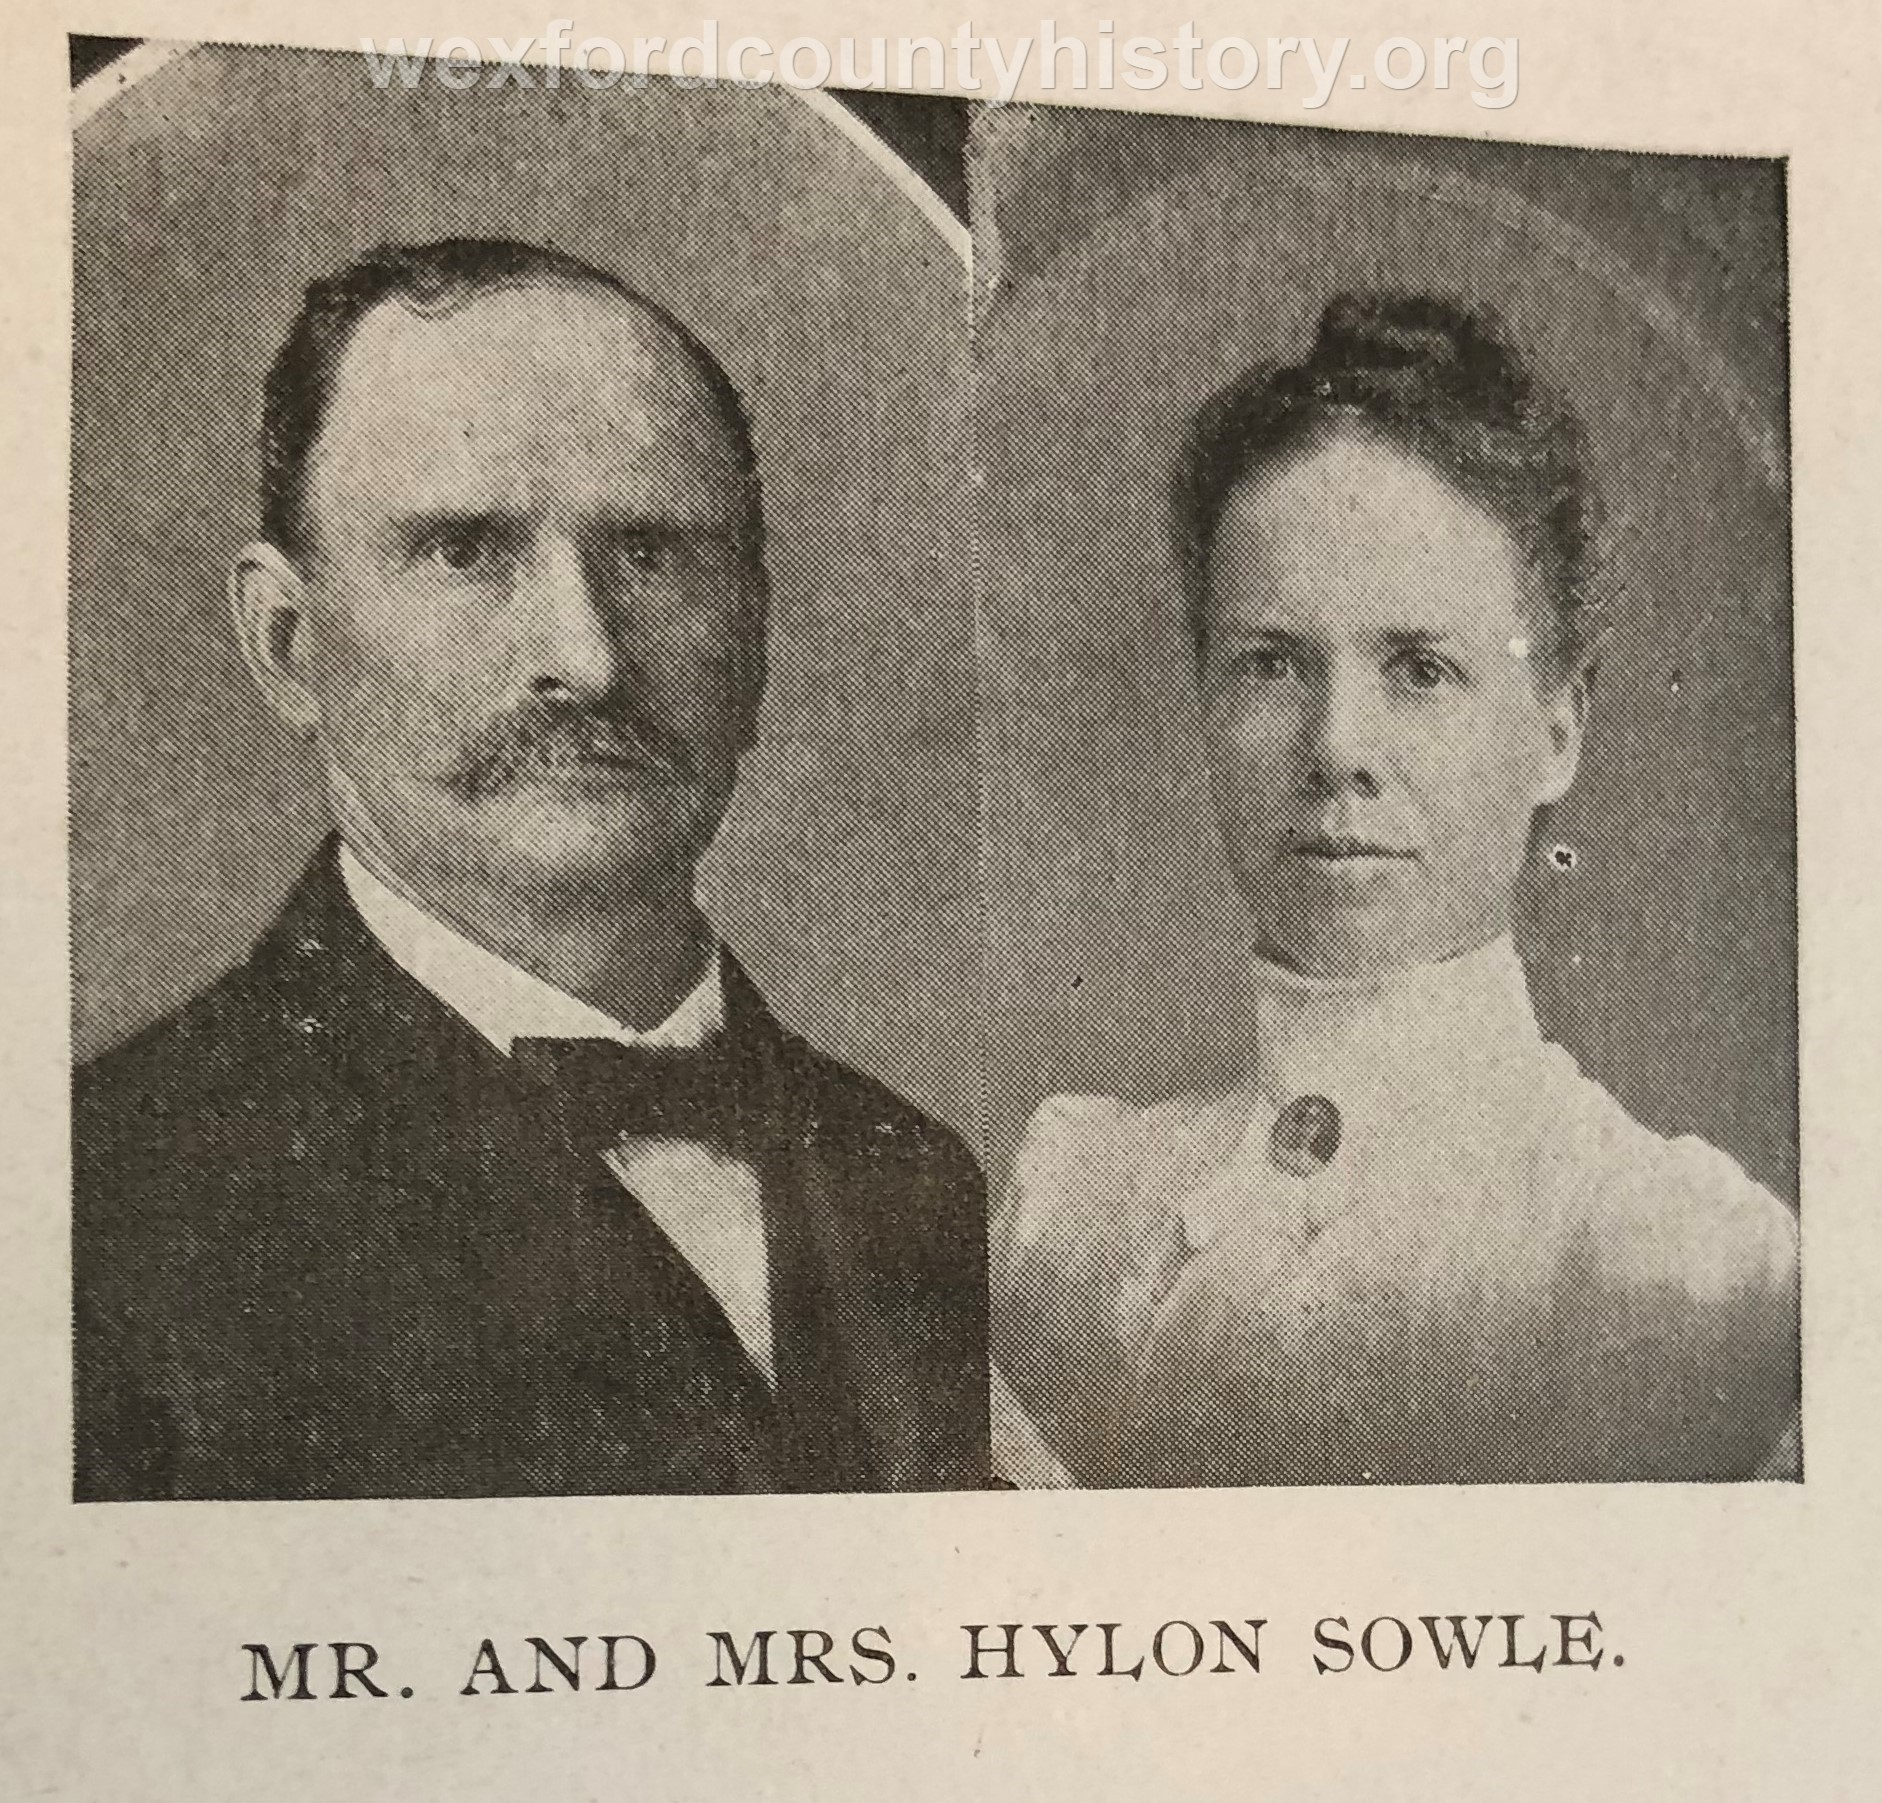 Mr. And Mrs. Hylon Sowle